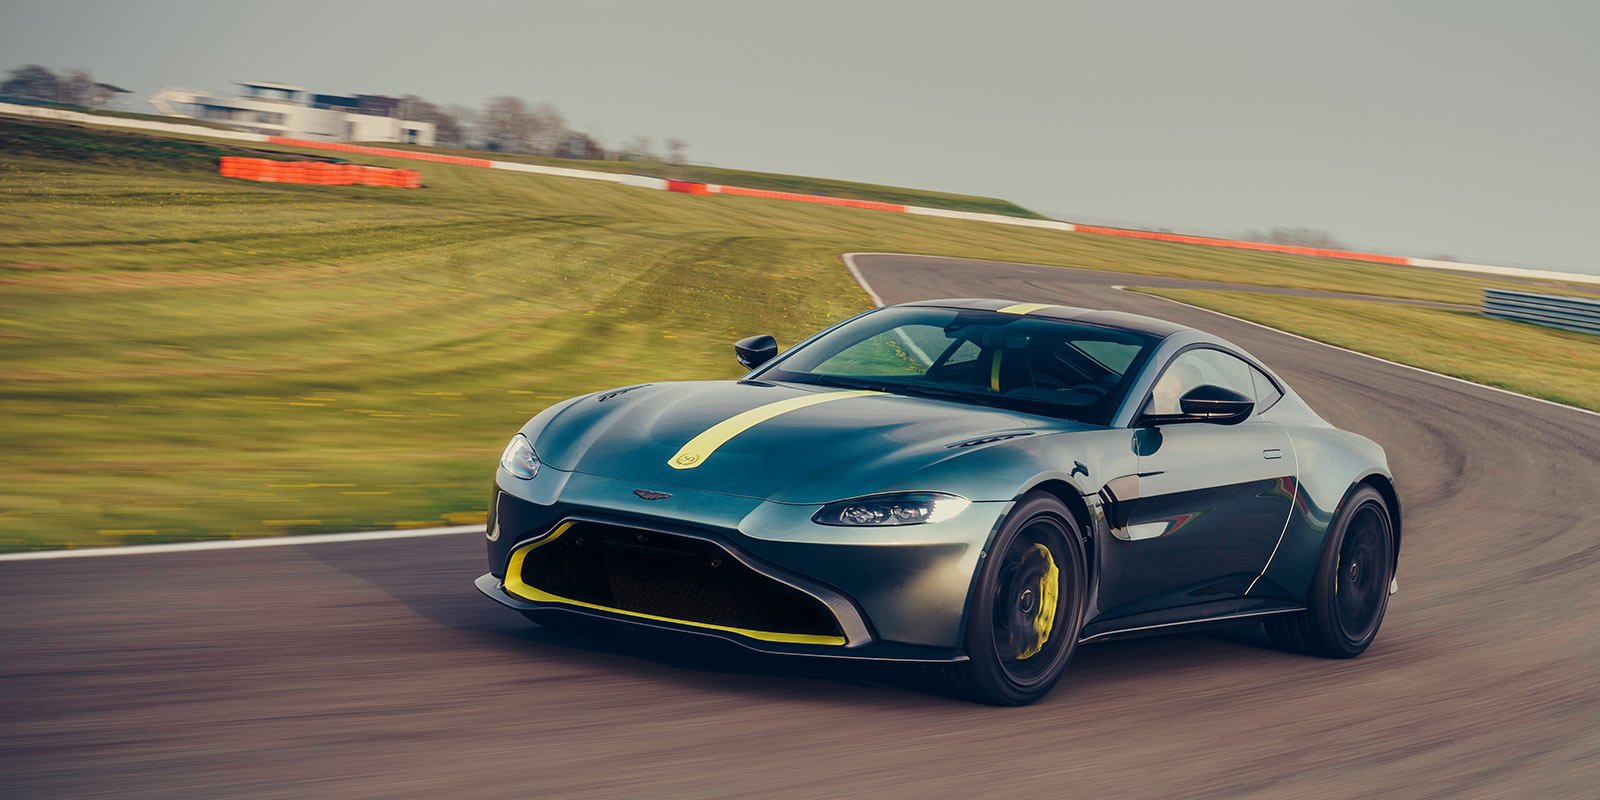 Aston Martin Vantage AMR - Limited Edition - Pure, Engaging Performance image 9